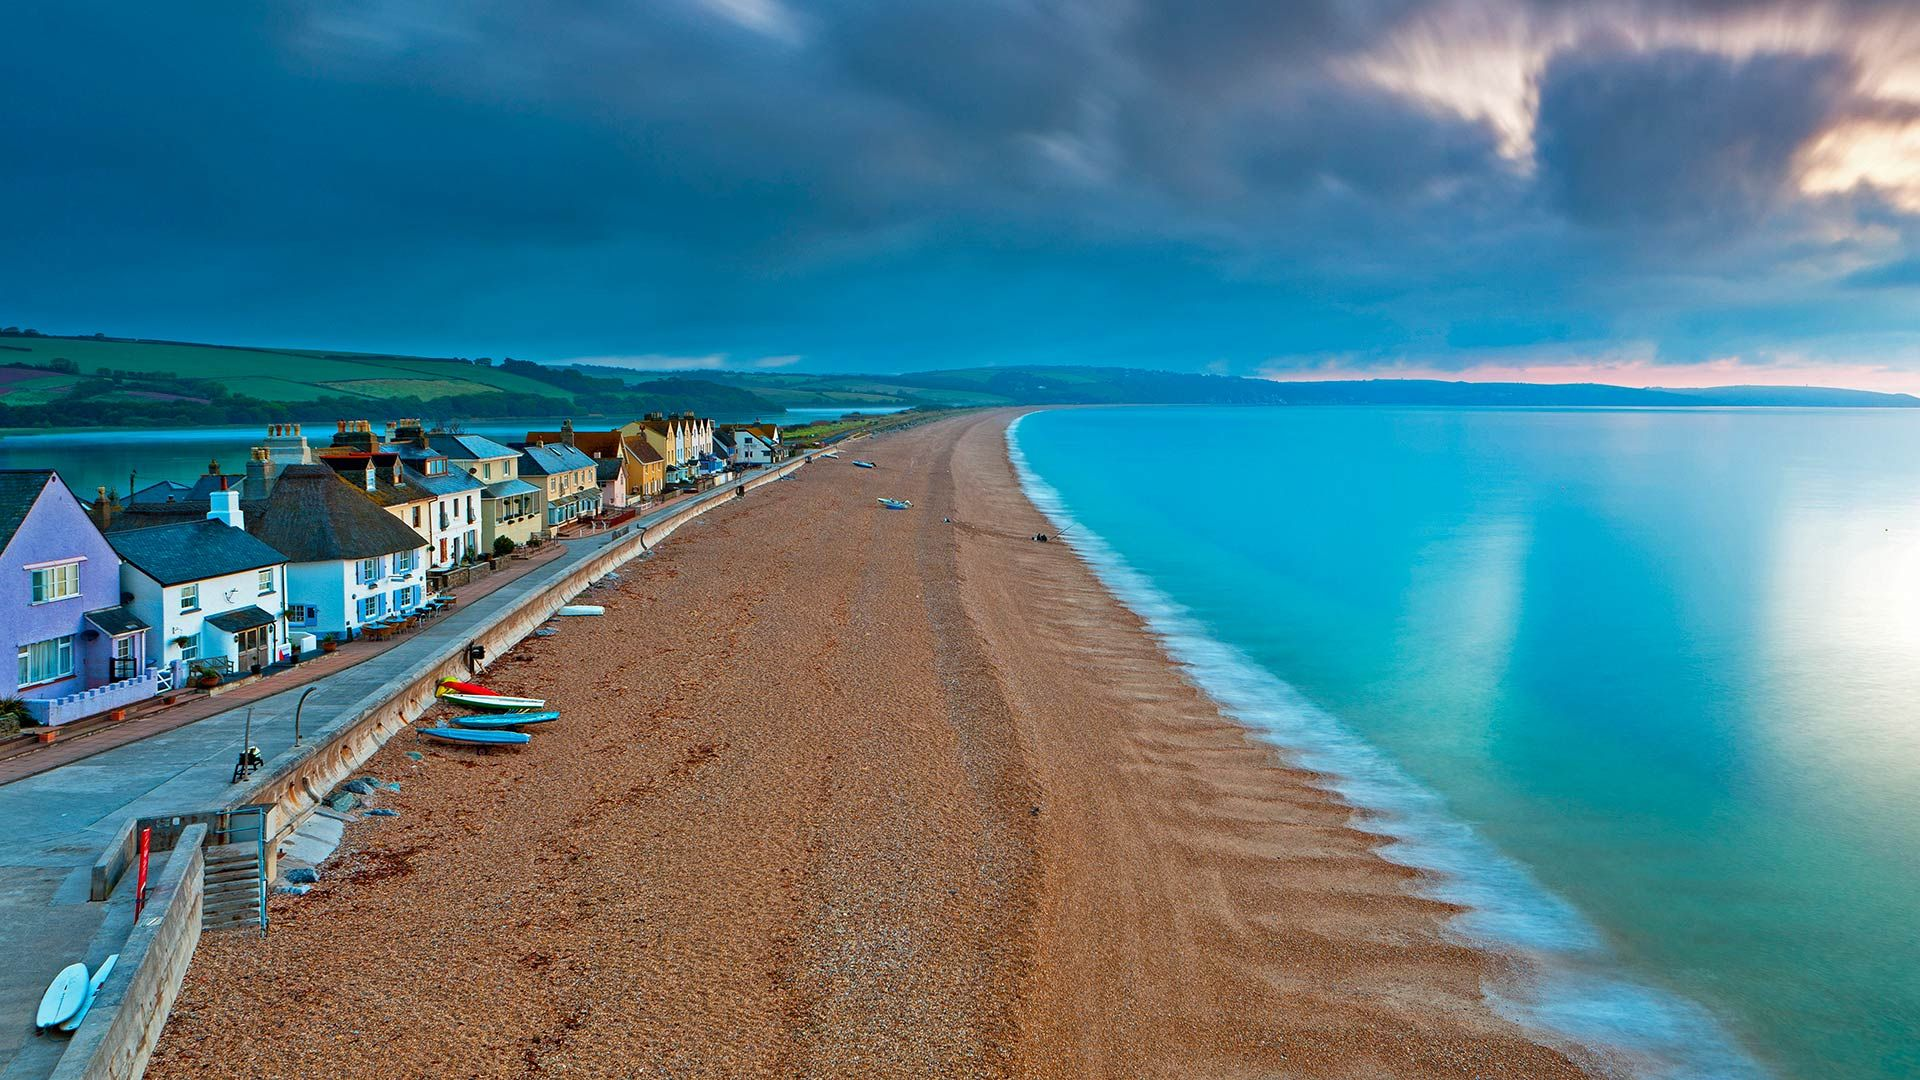 Torcross, South Devon, England 630